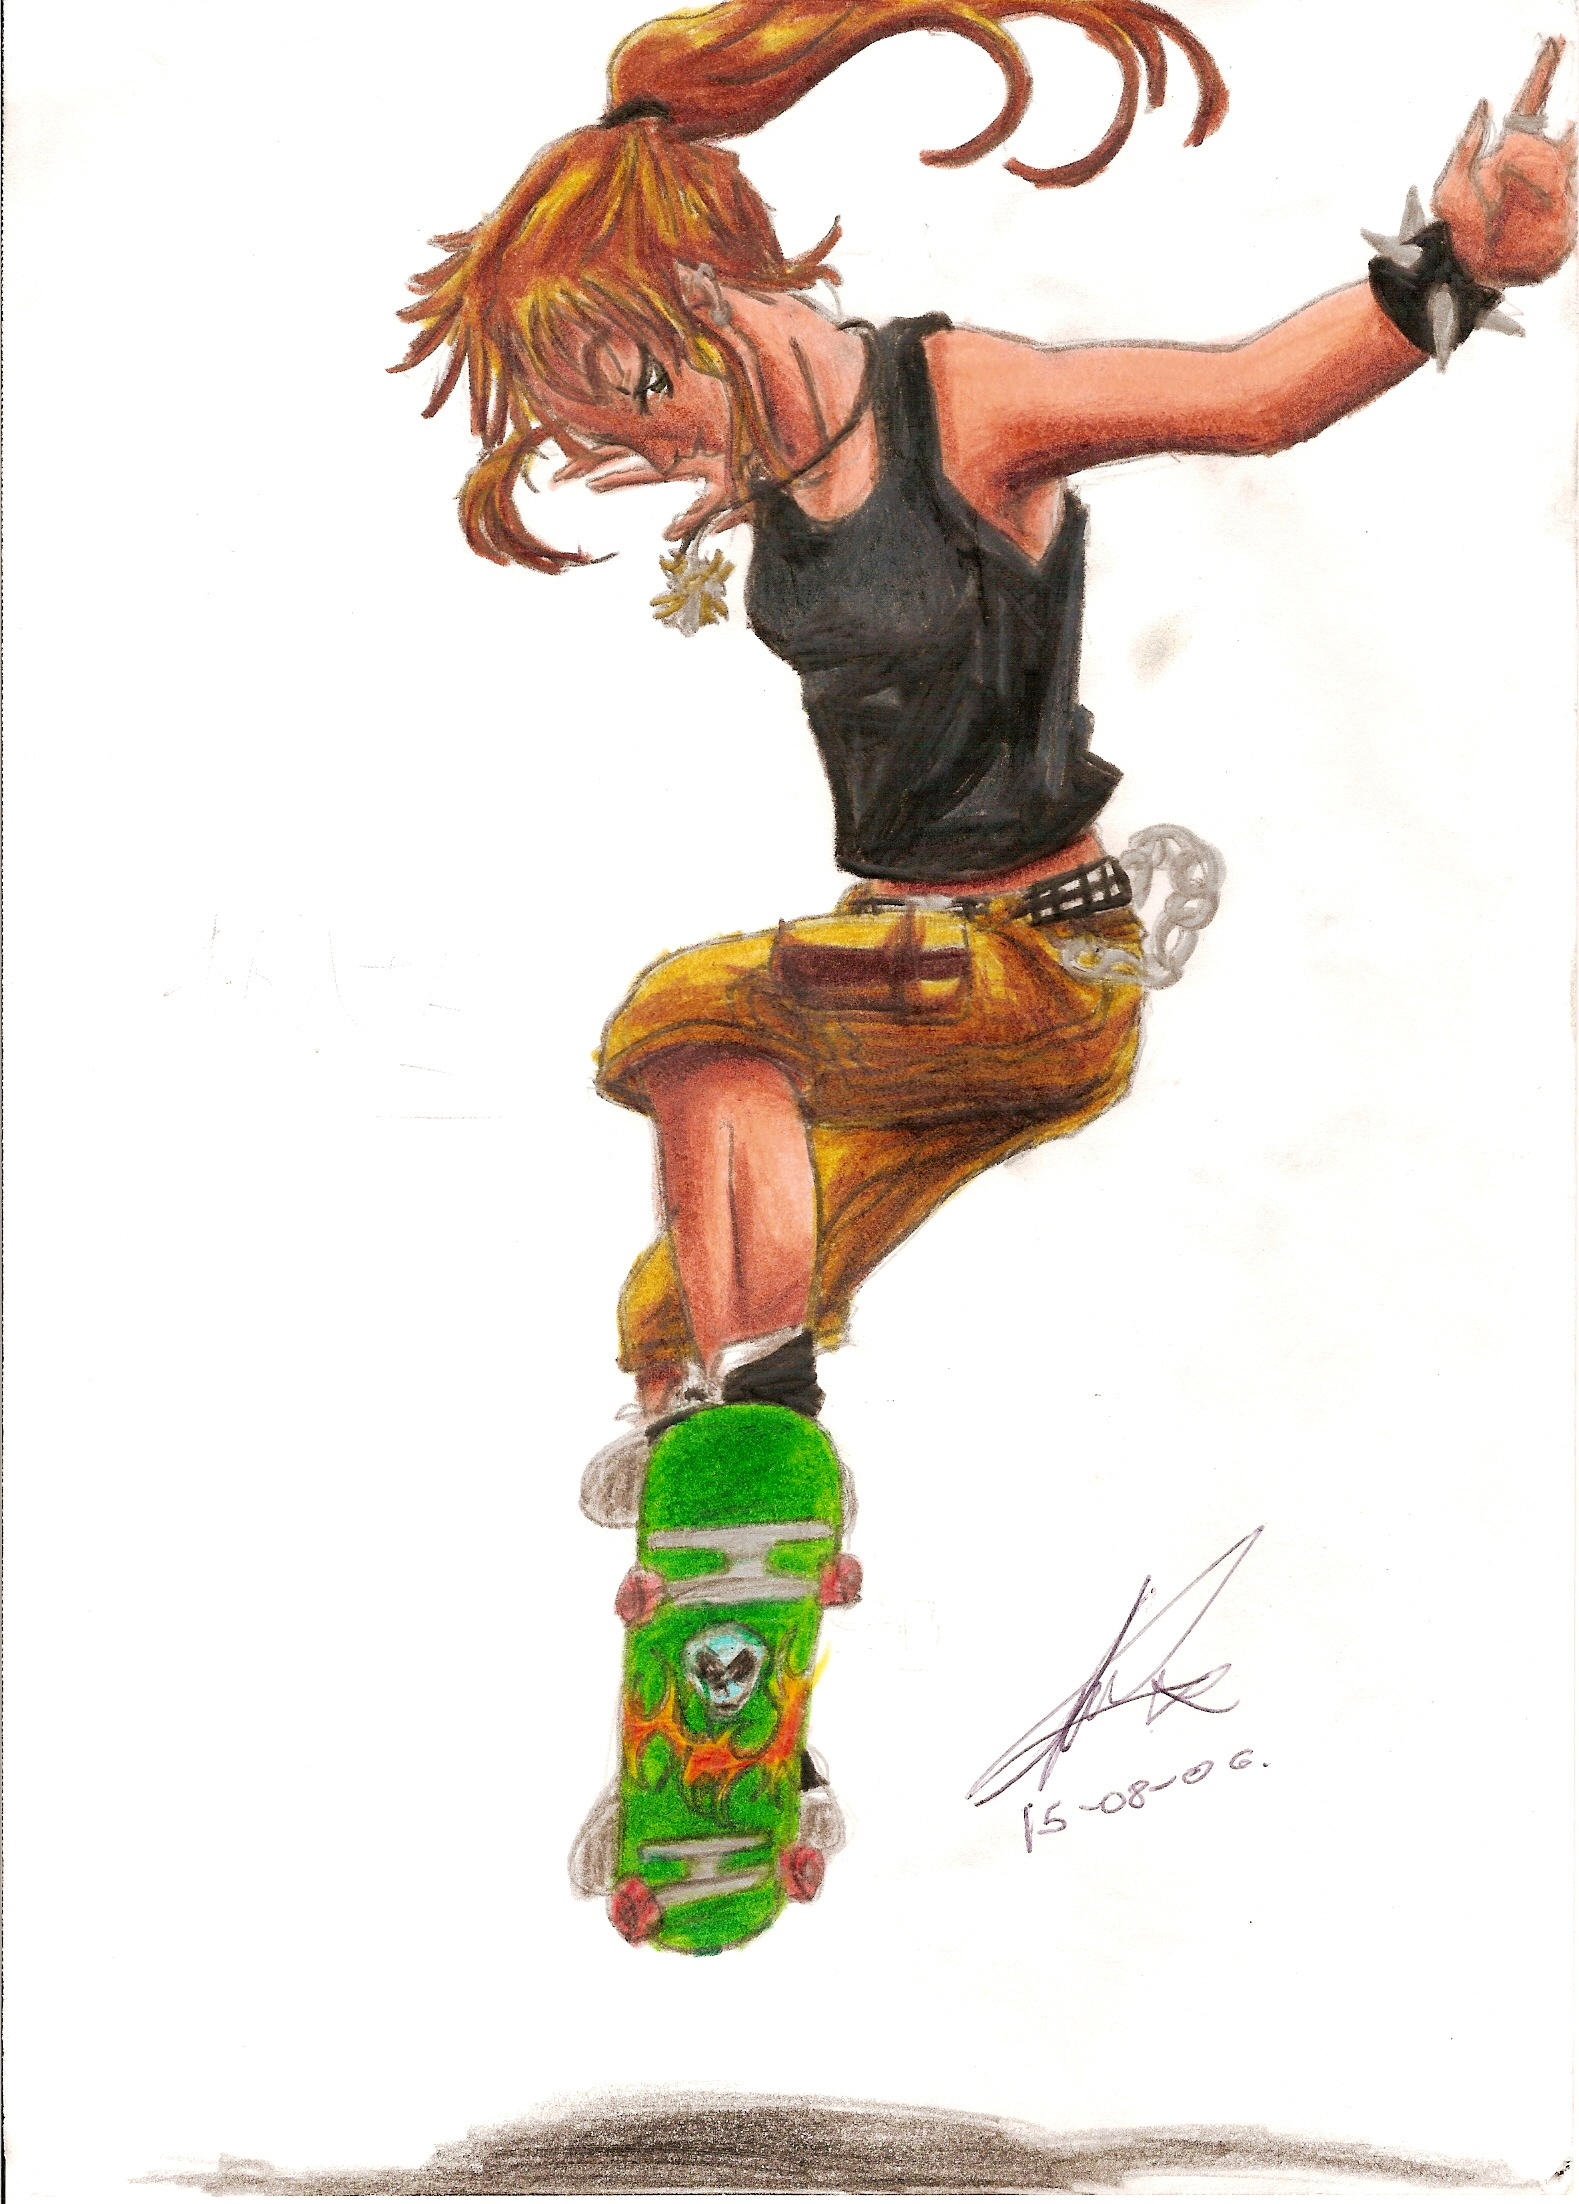 Skate_-_Girl by yukax-poison